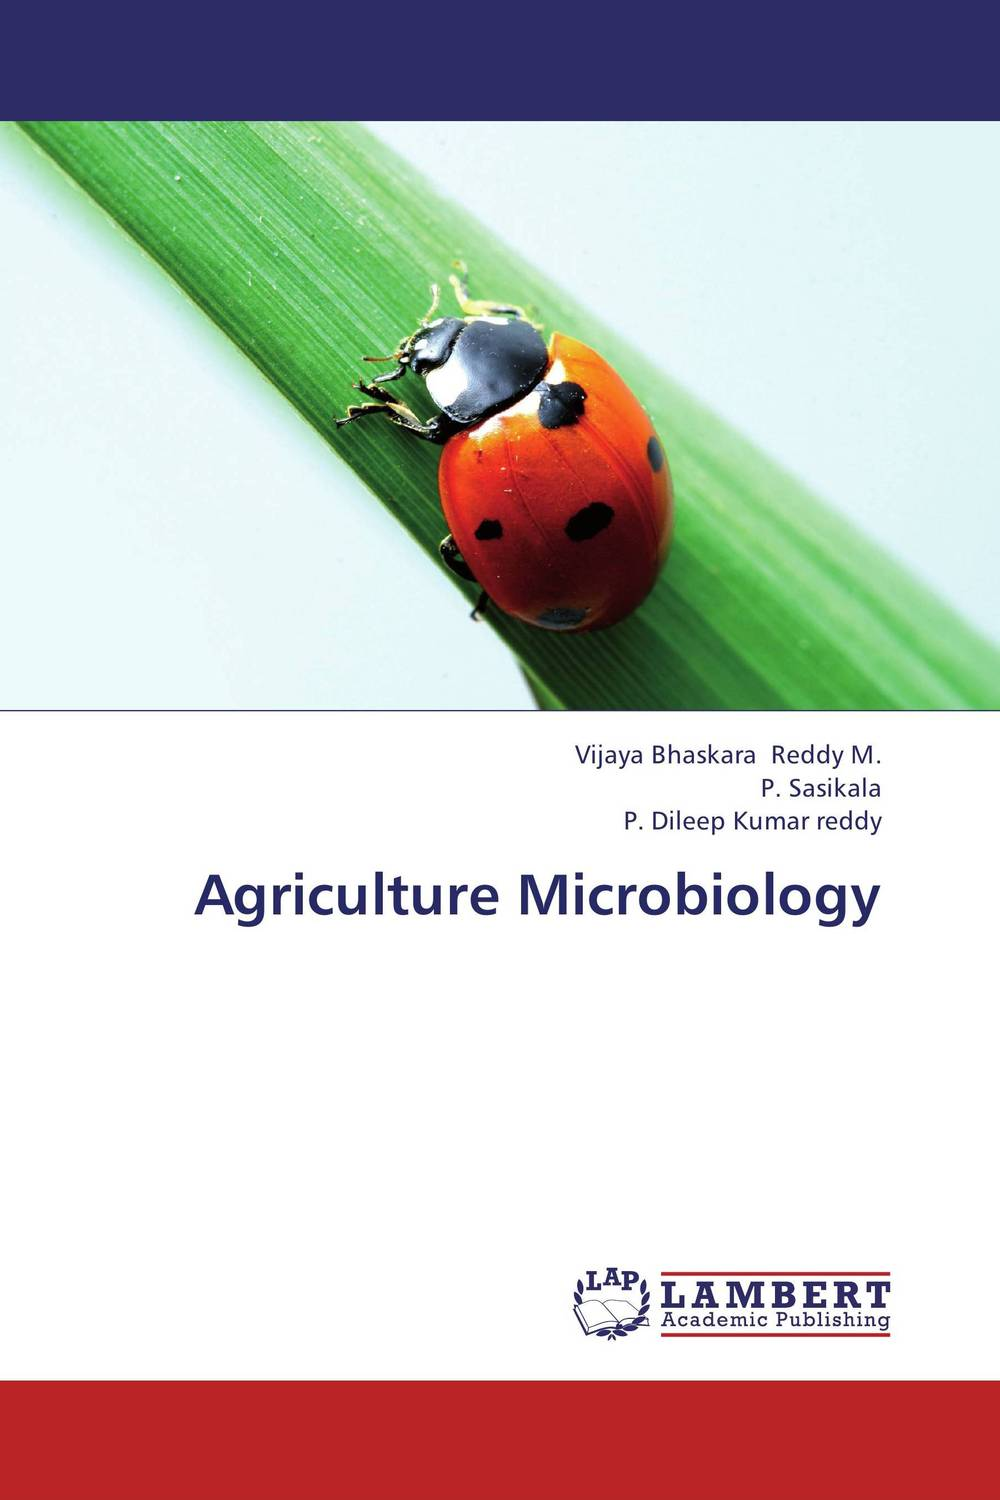 Agriculture Microbiology pastoralism and agriculture pennar basin india